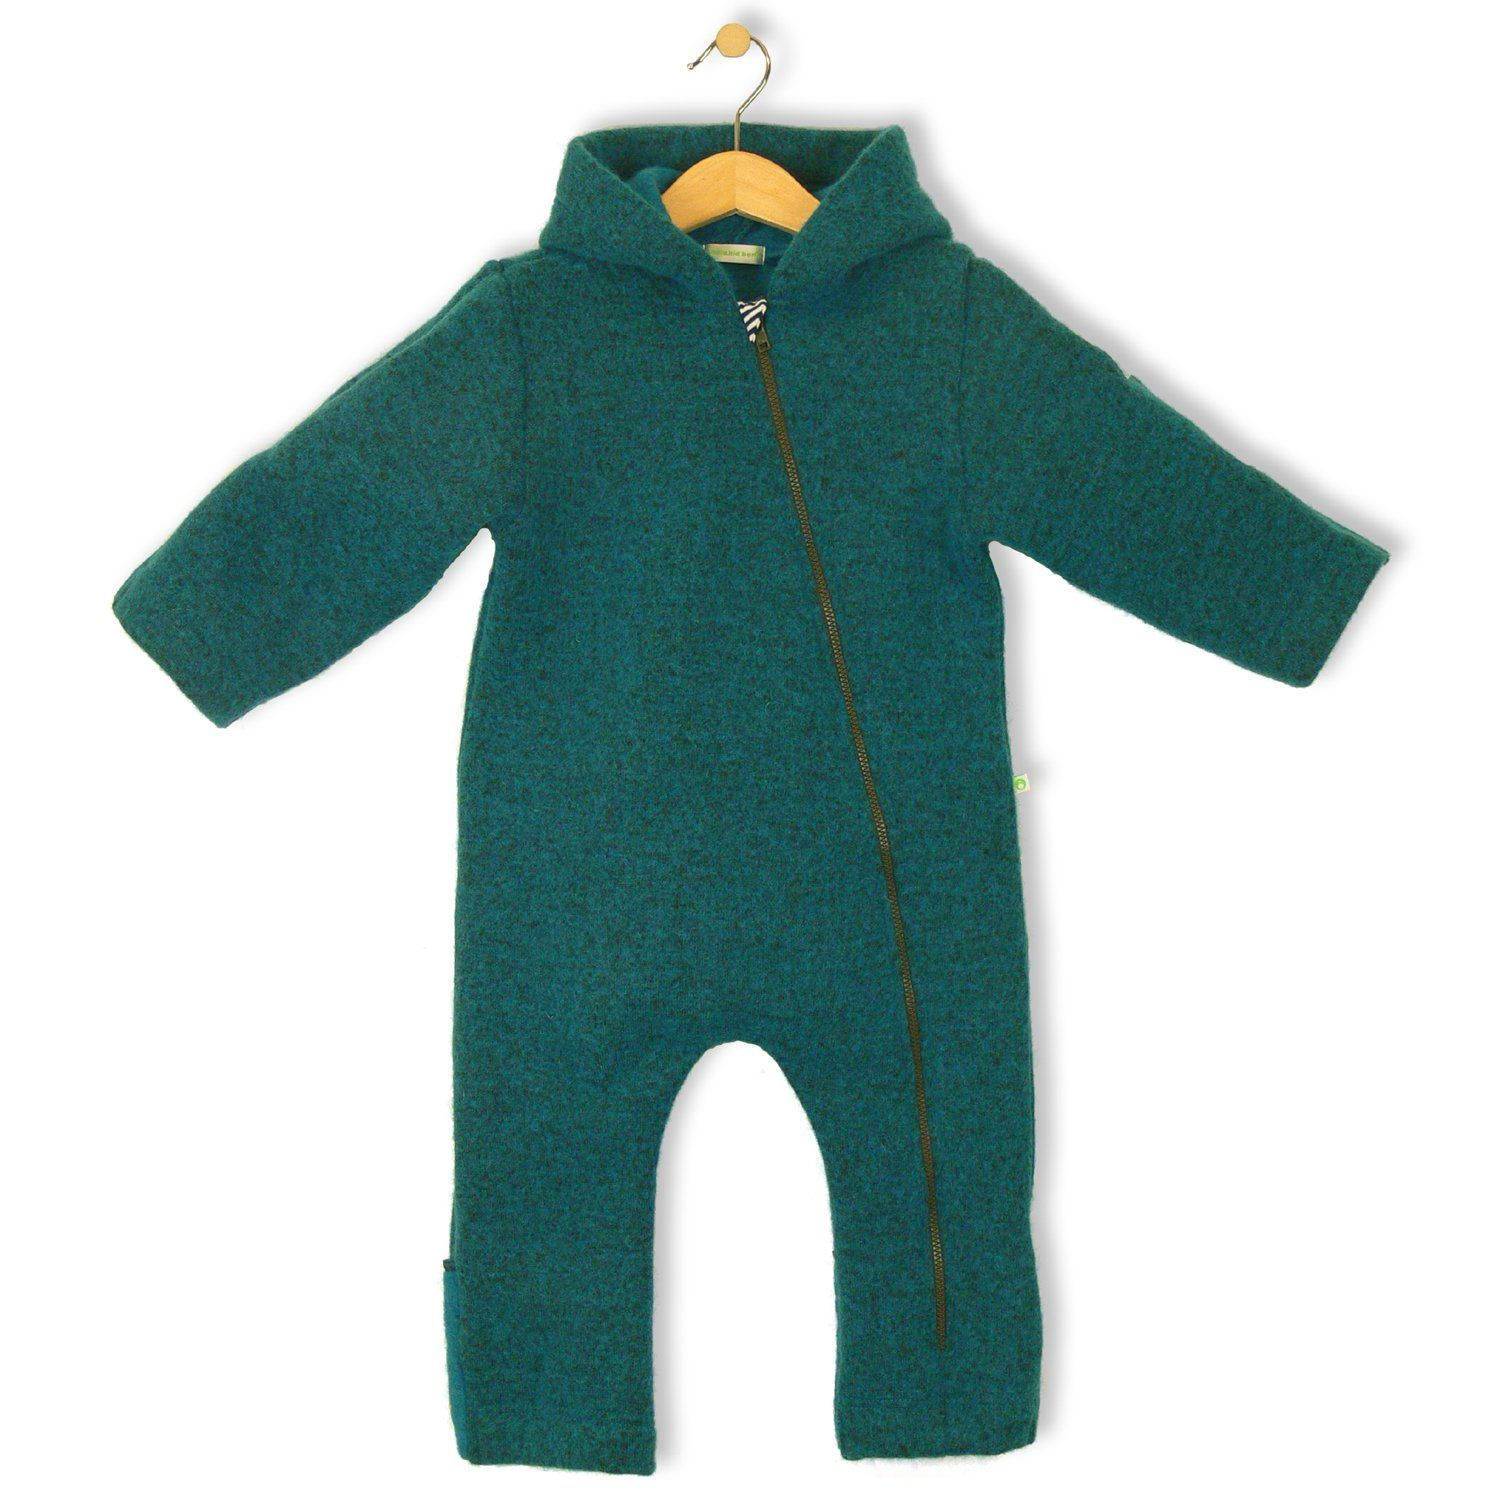 4a100da6c7 bubble.kid berlin - Unisex Baby Winter Overall ANU, Overall aus Wolle - Tec